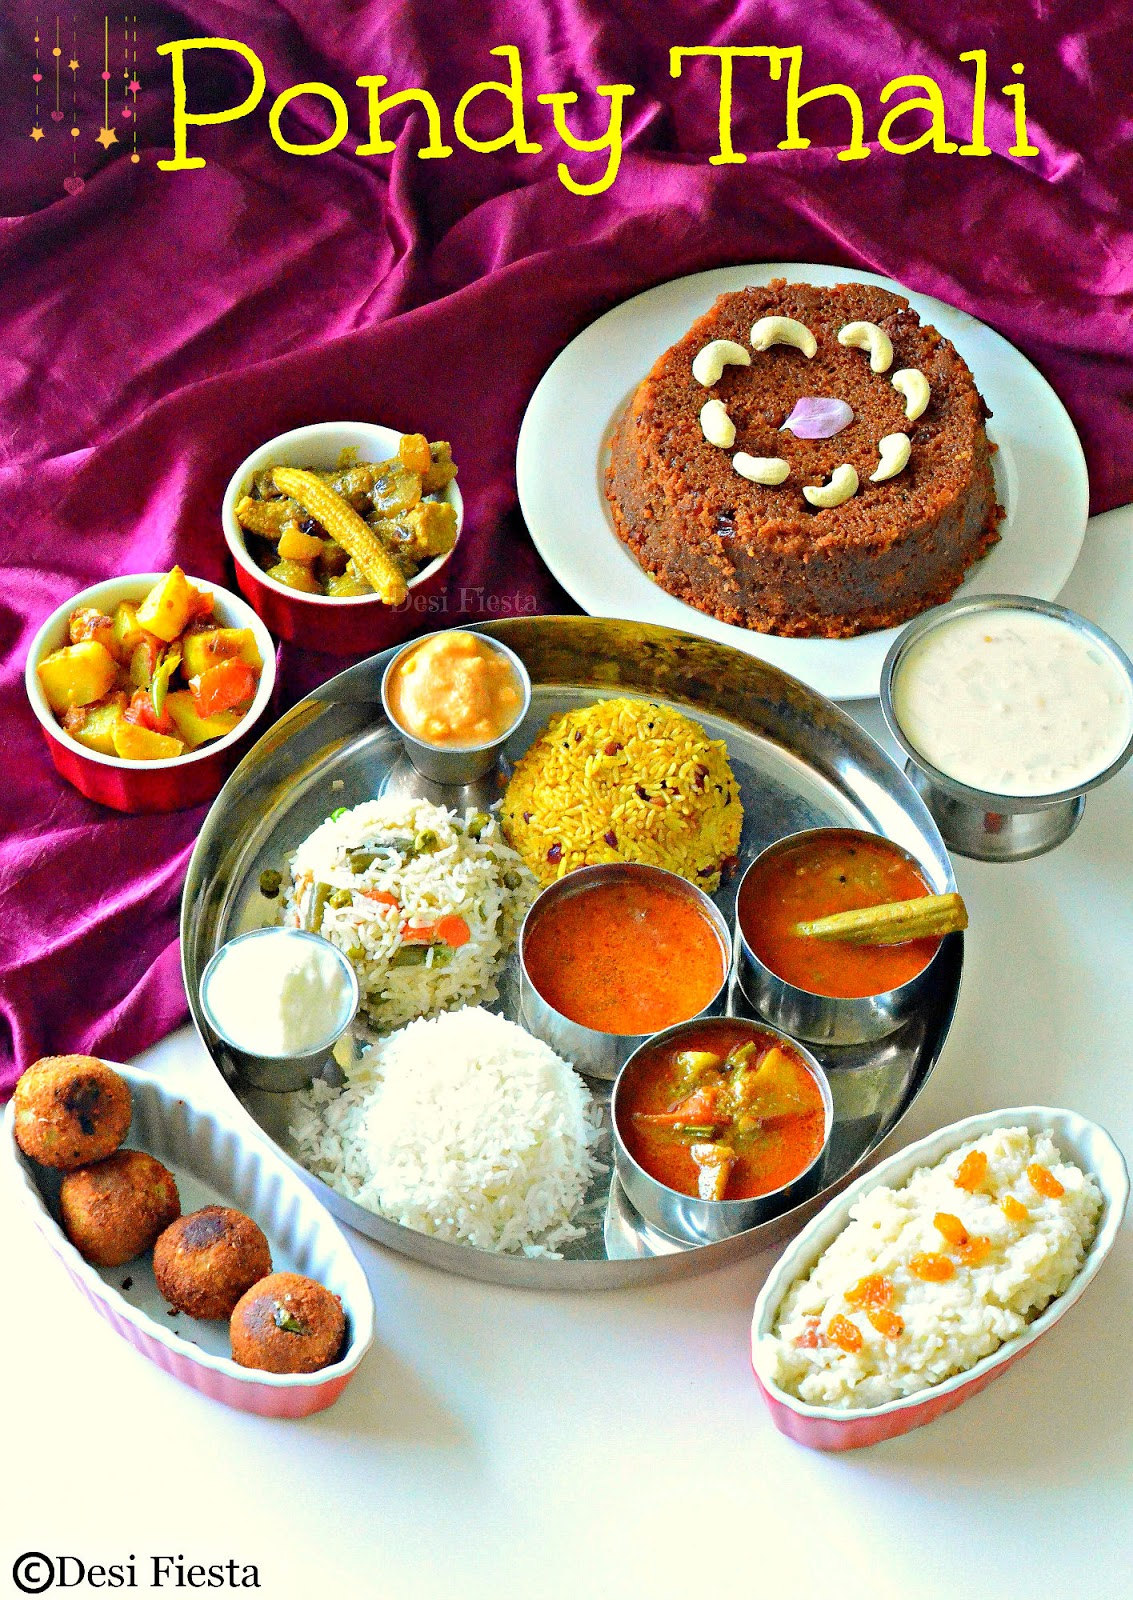 Puducherry Cuisine of Puducherry, Popular Food of Puducherry